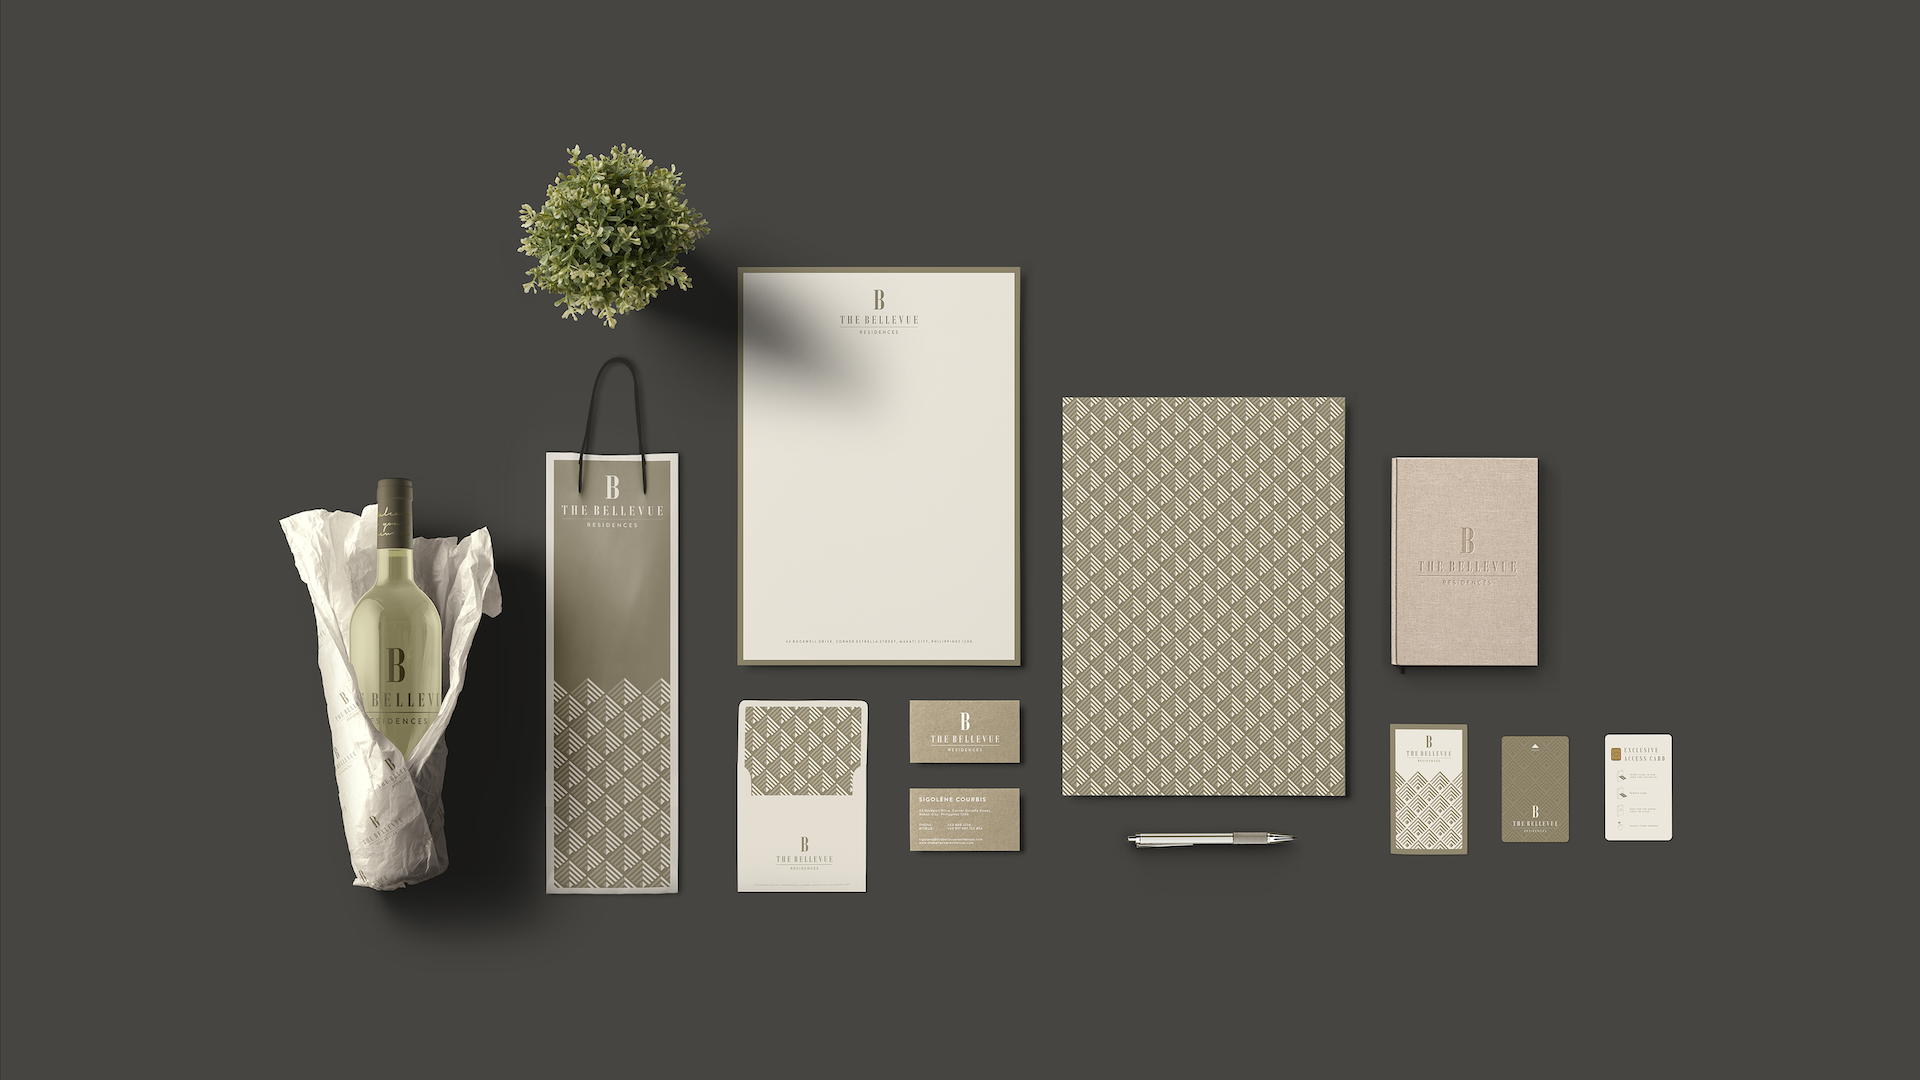 The Bellevue residences Branding Project by Fishfinger Design Agency